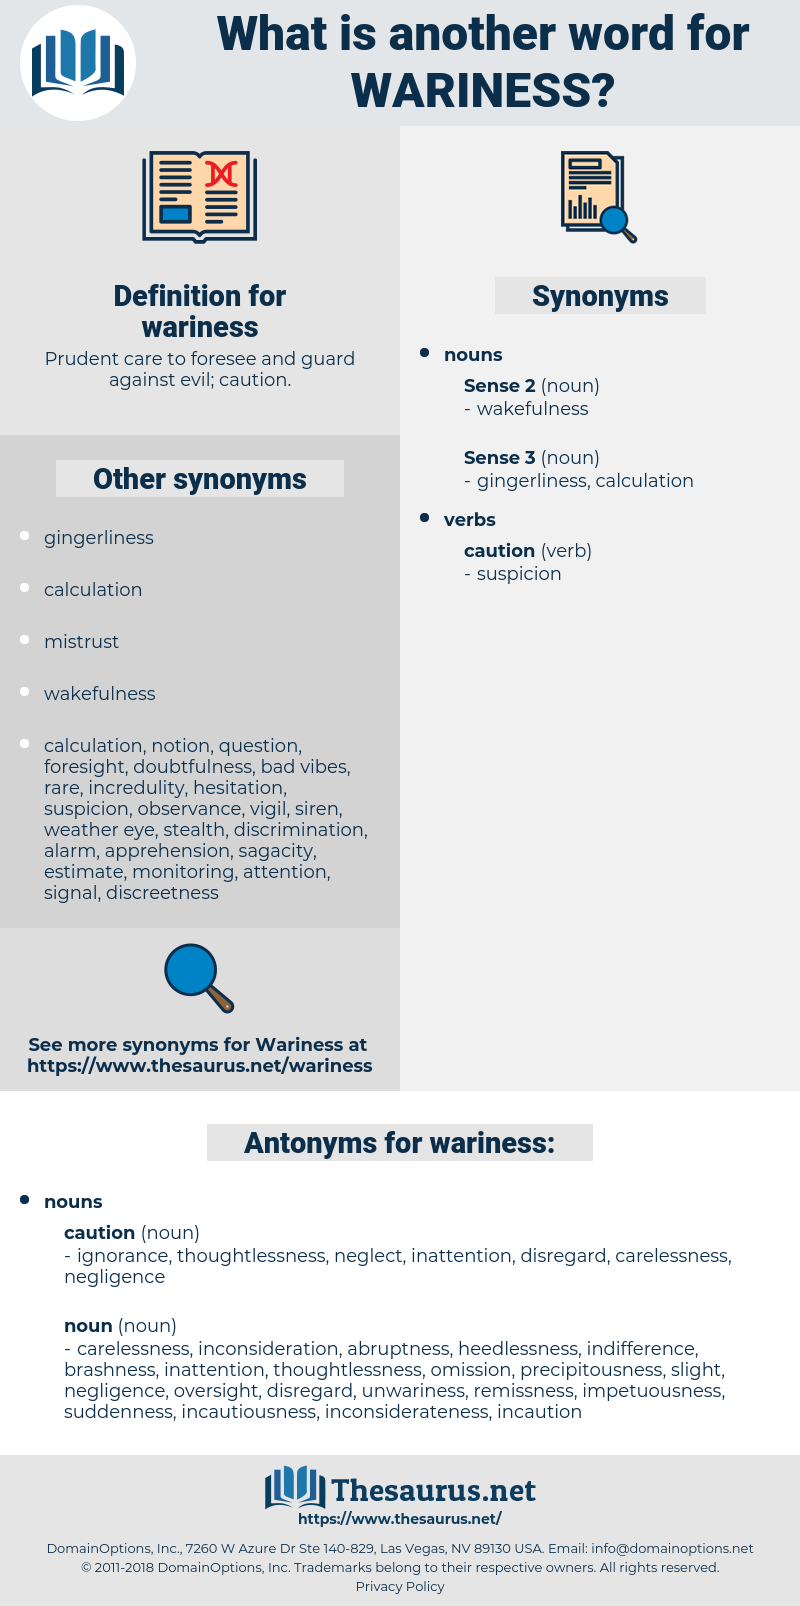 wariness, synonym wariness, another word for wariness, words like wariness, thesaurus wariness